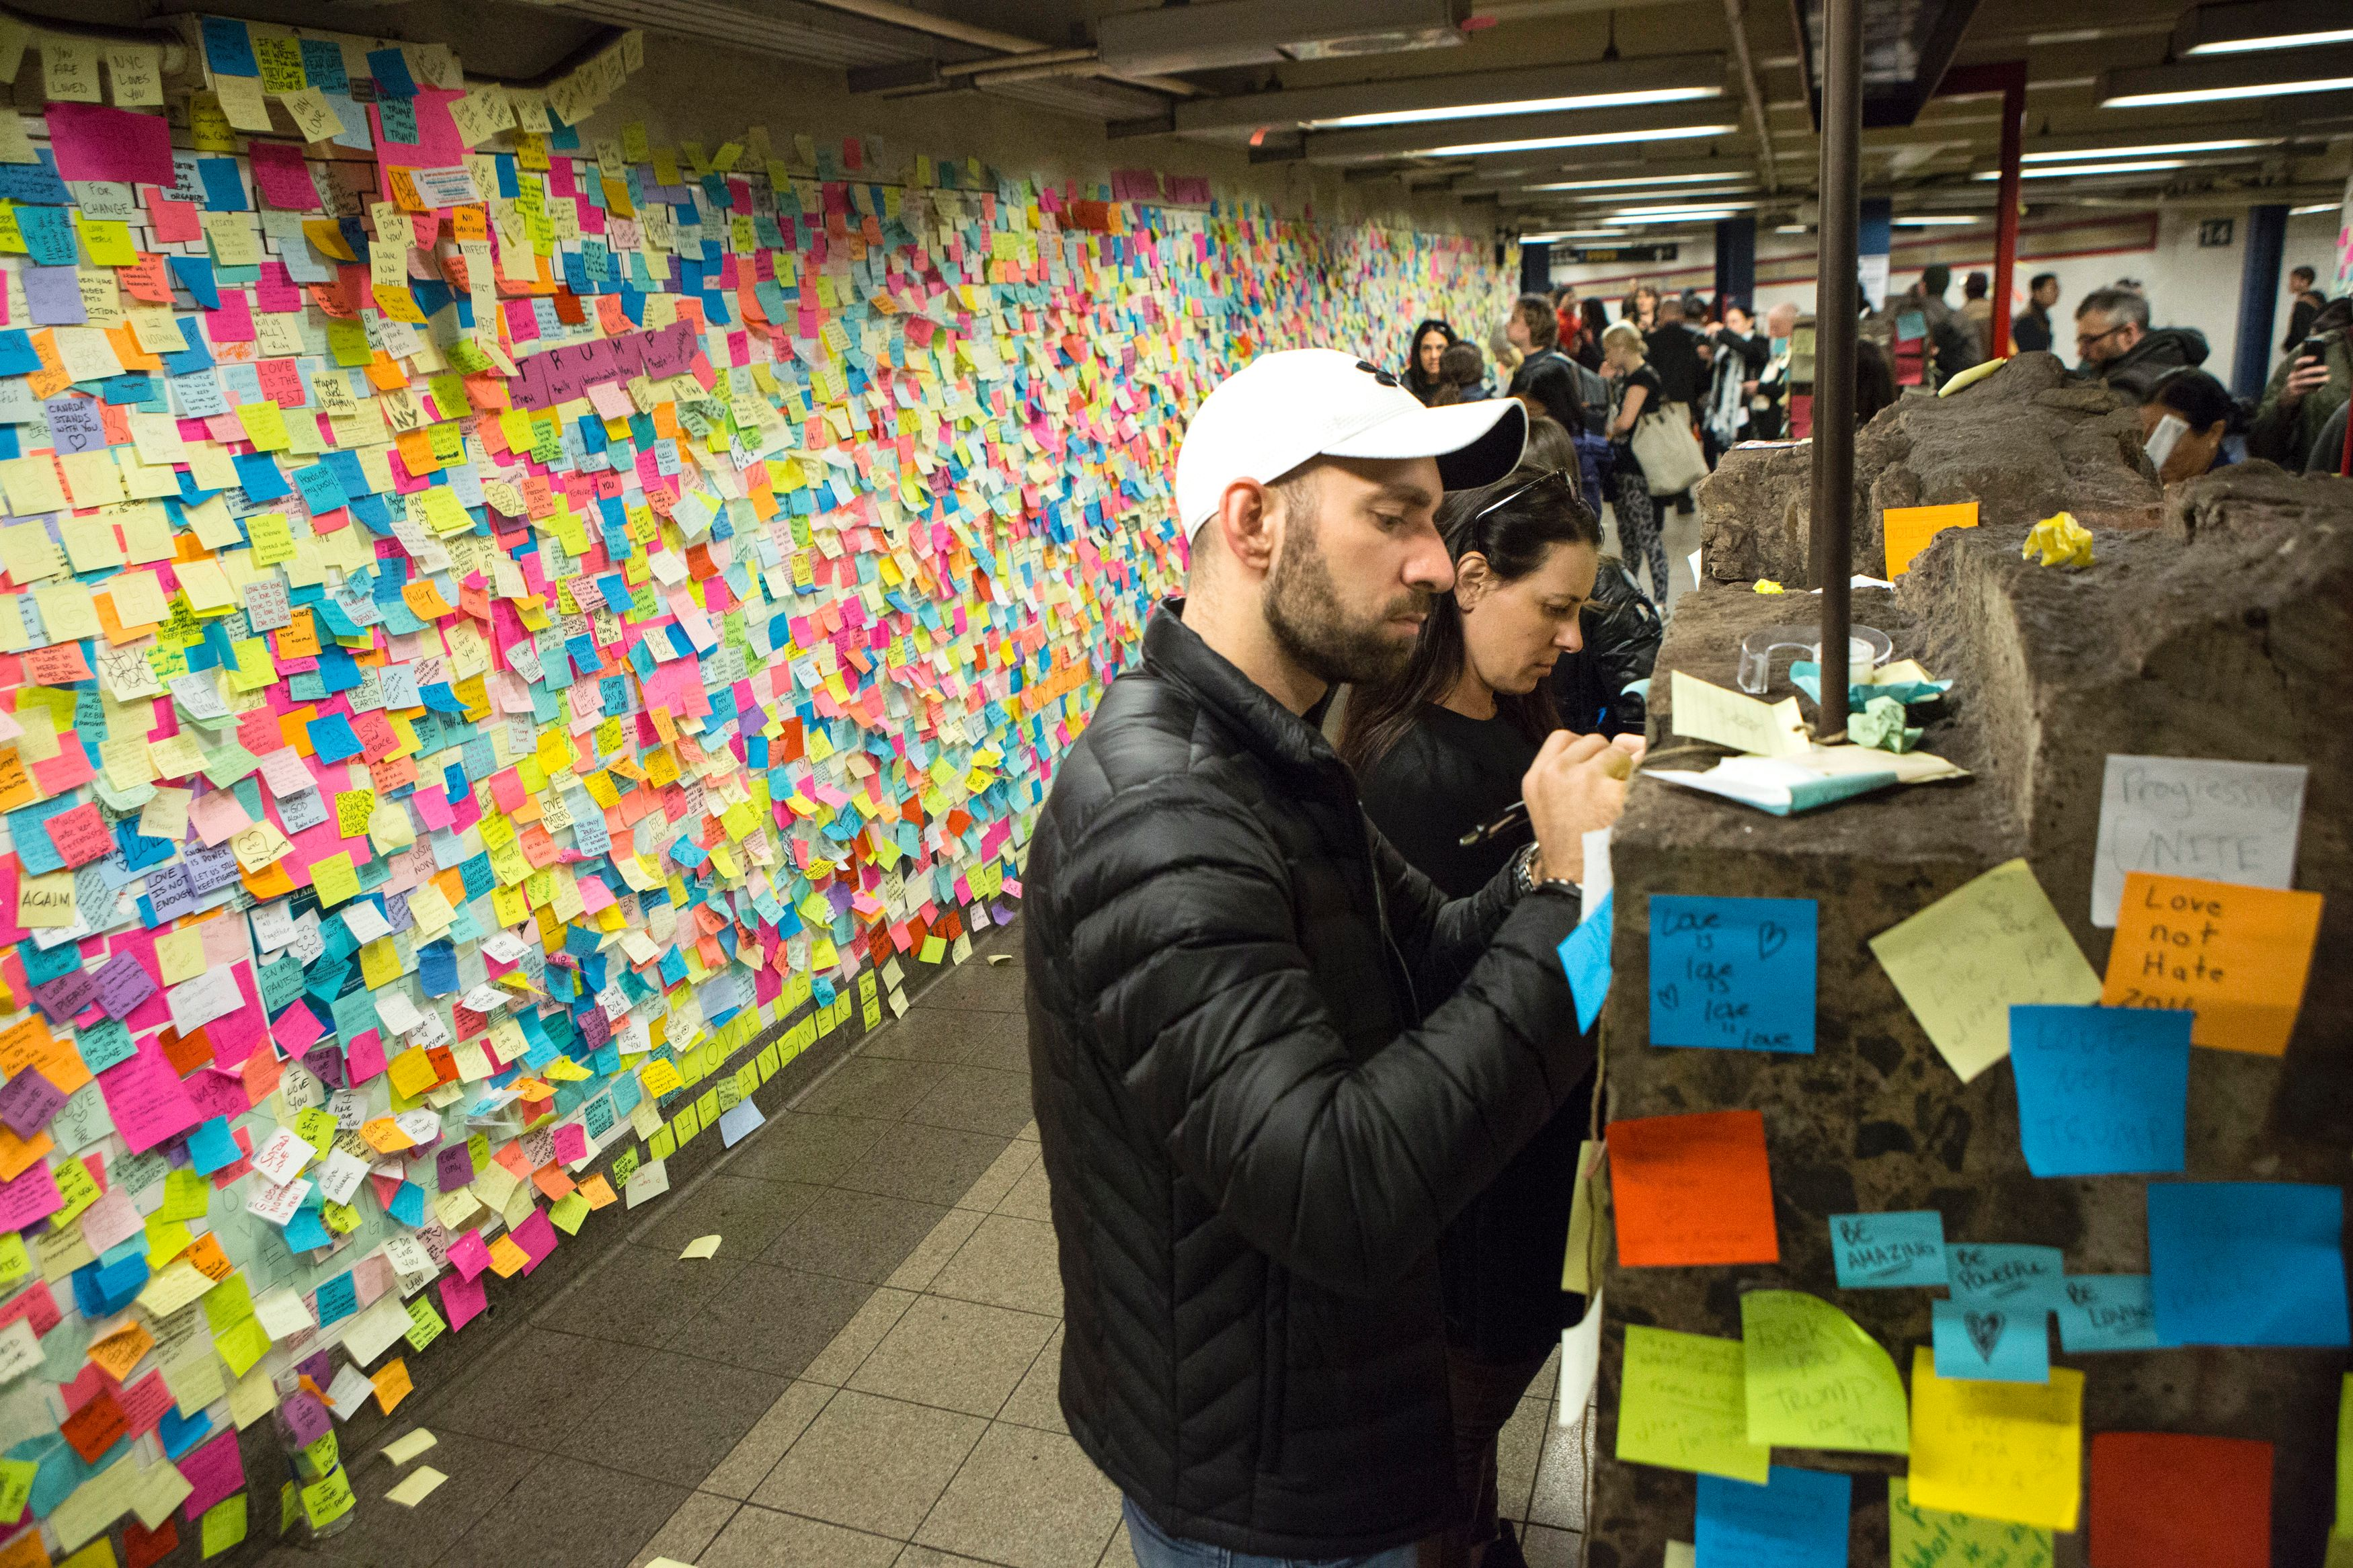 "People stick a Post-It note to participate in the art piece 'Subway Therapy' at the Union Square subway station in New York on November 17, 2016 ""Subway Therapy"" allows people to express their thoughts with the public, and began after the November 8, 2016 US presidential election."